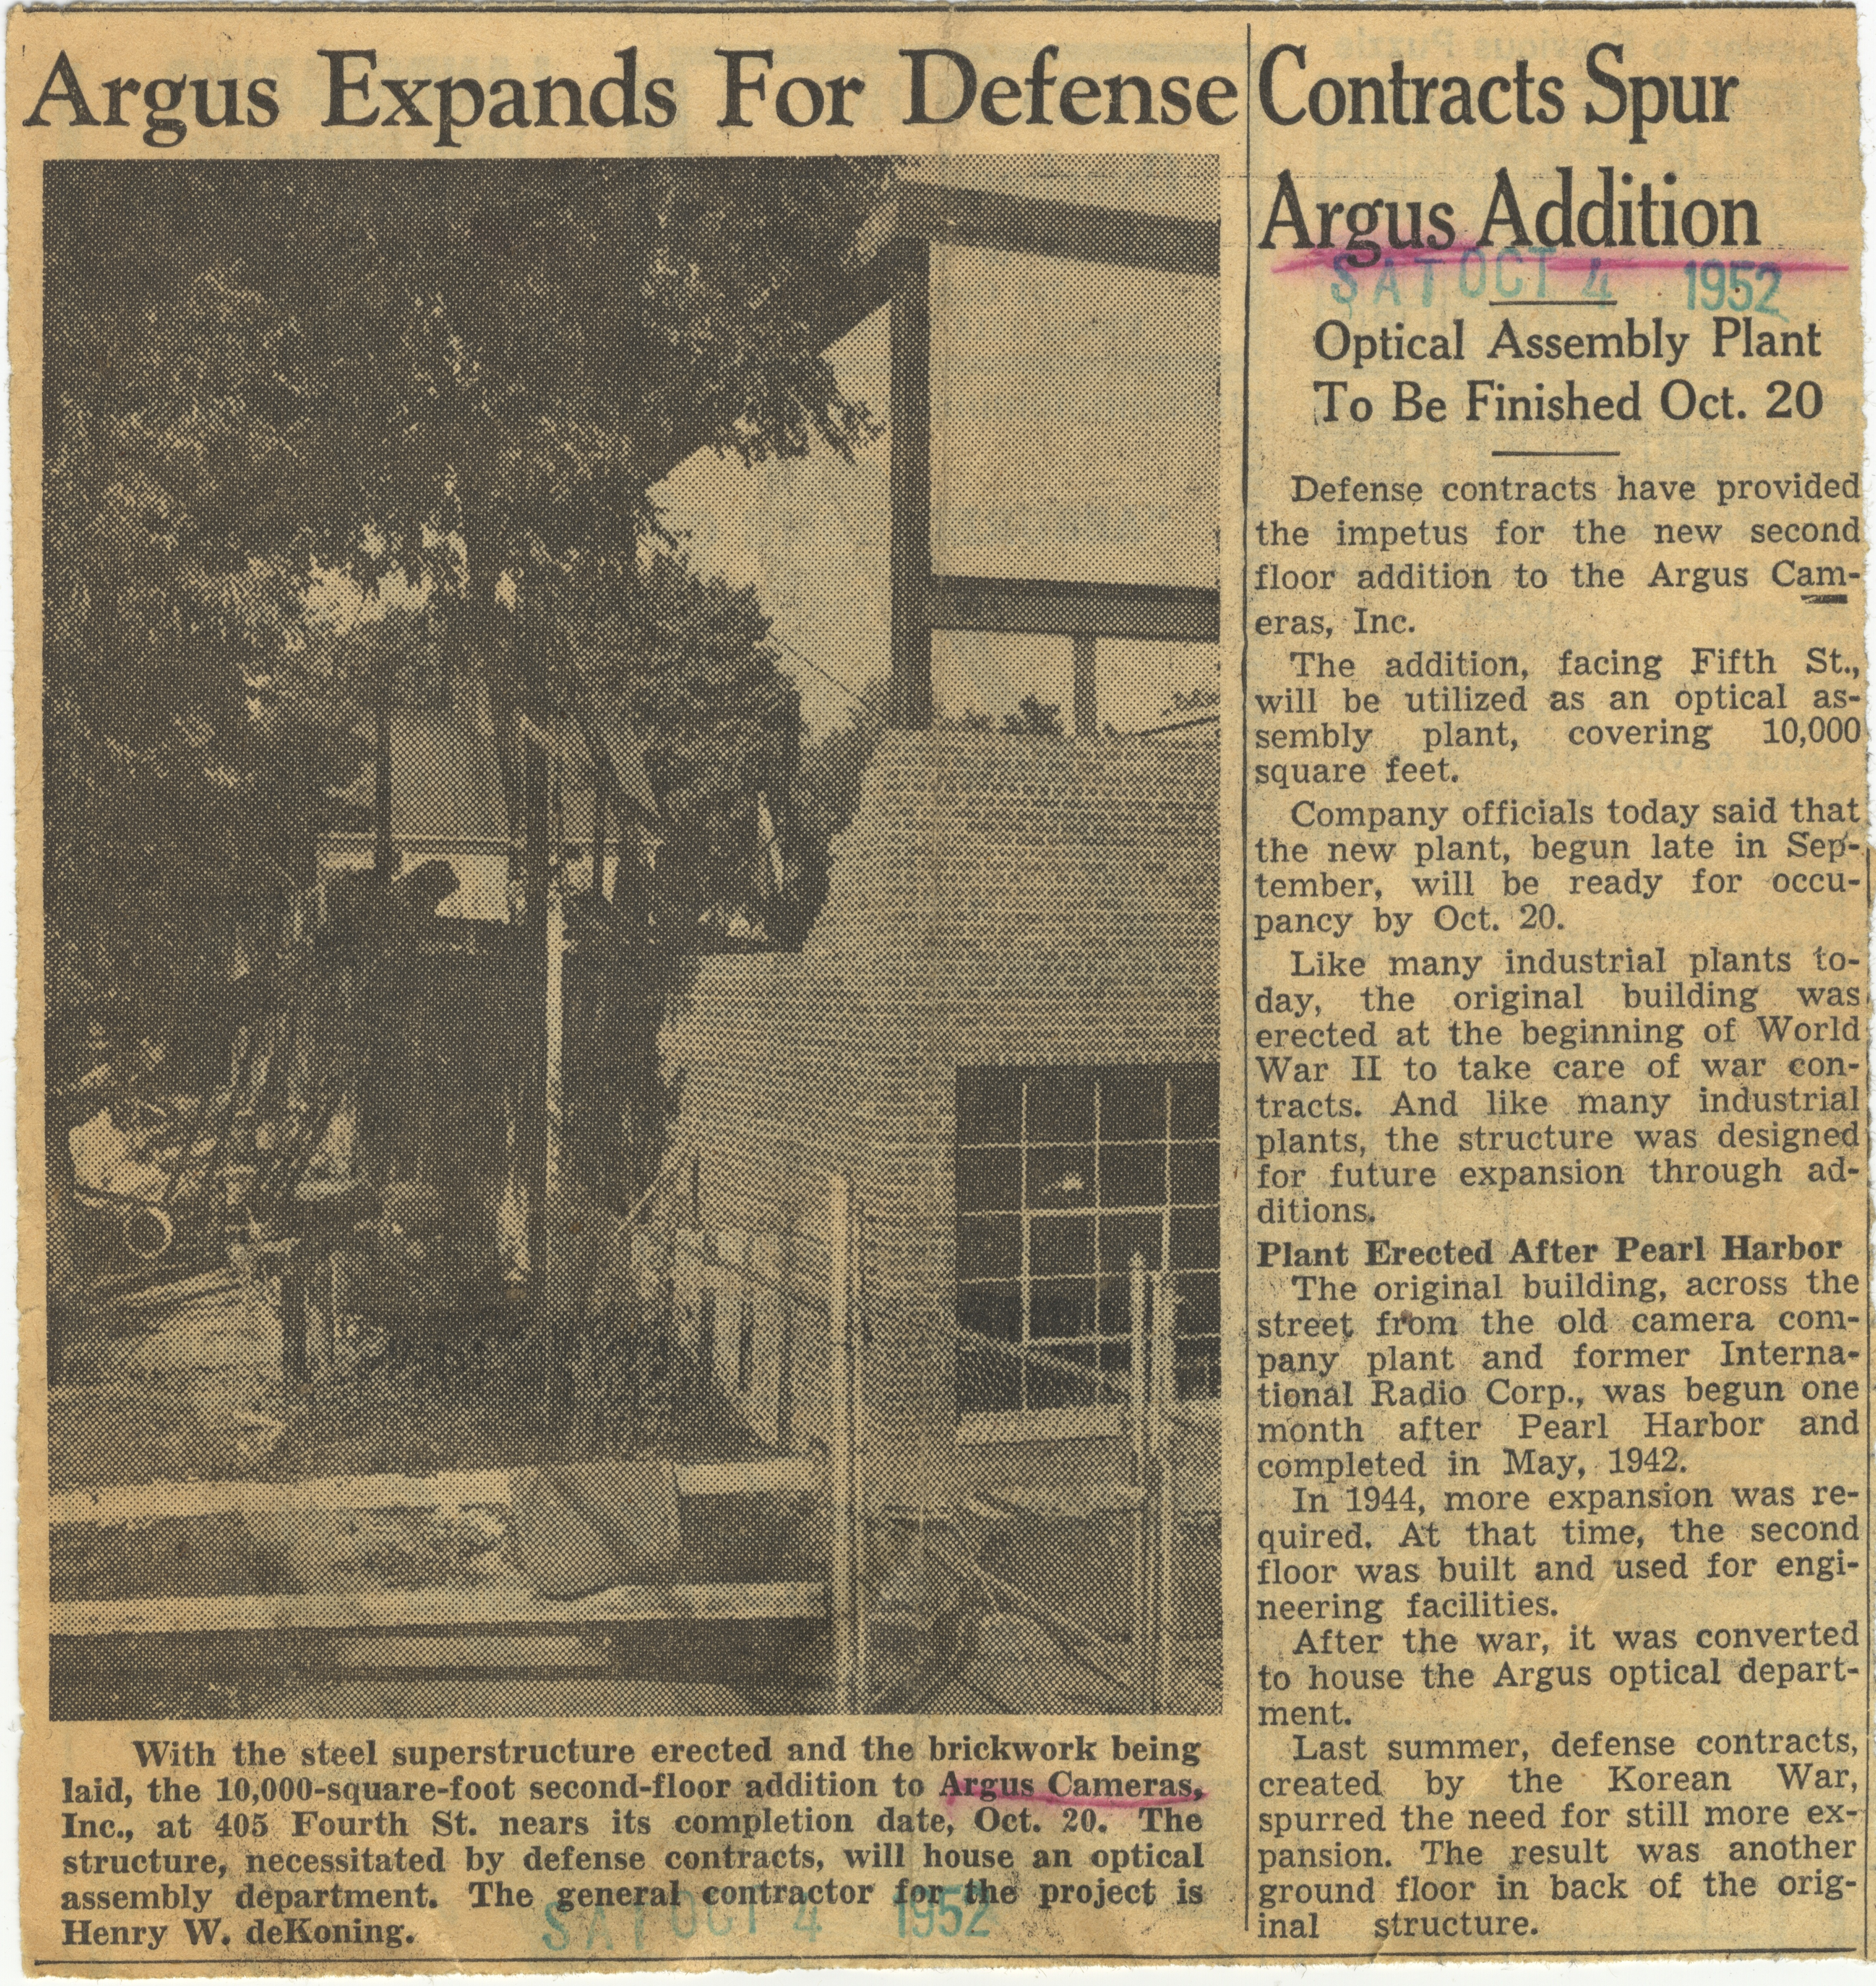 Argus Expands For Defense Contracts Spur Argus Addition image